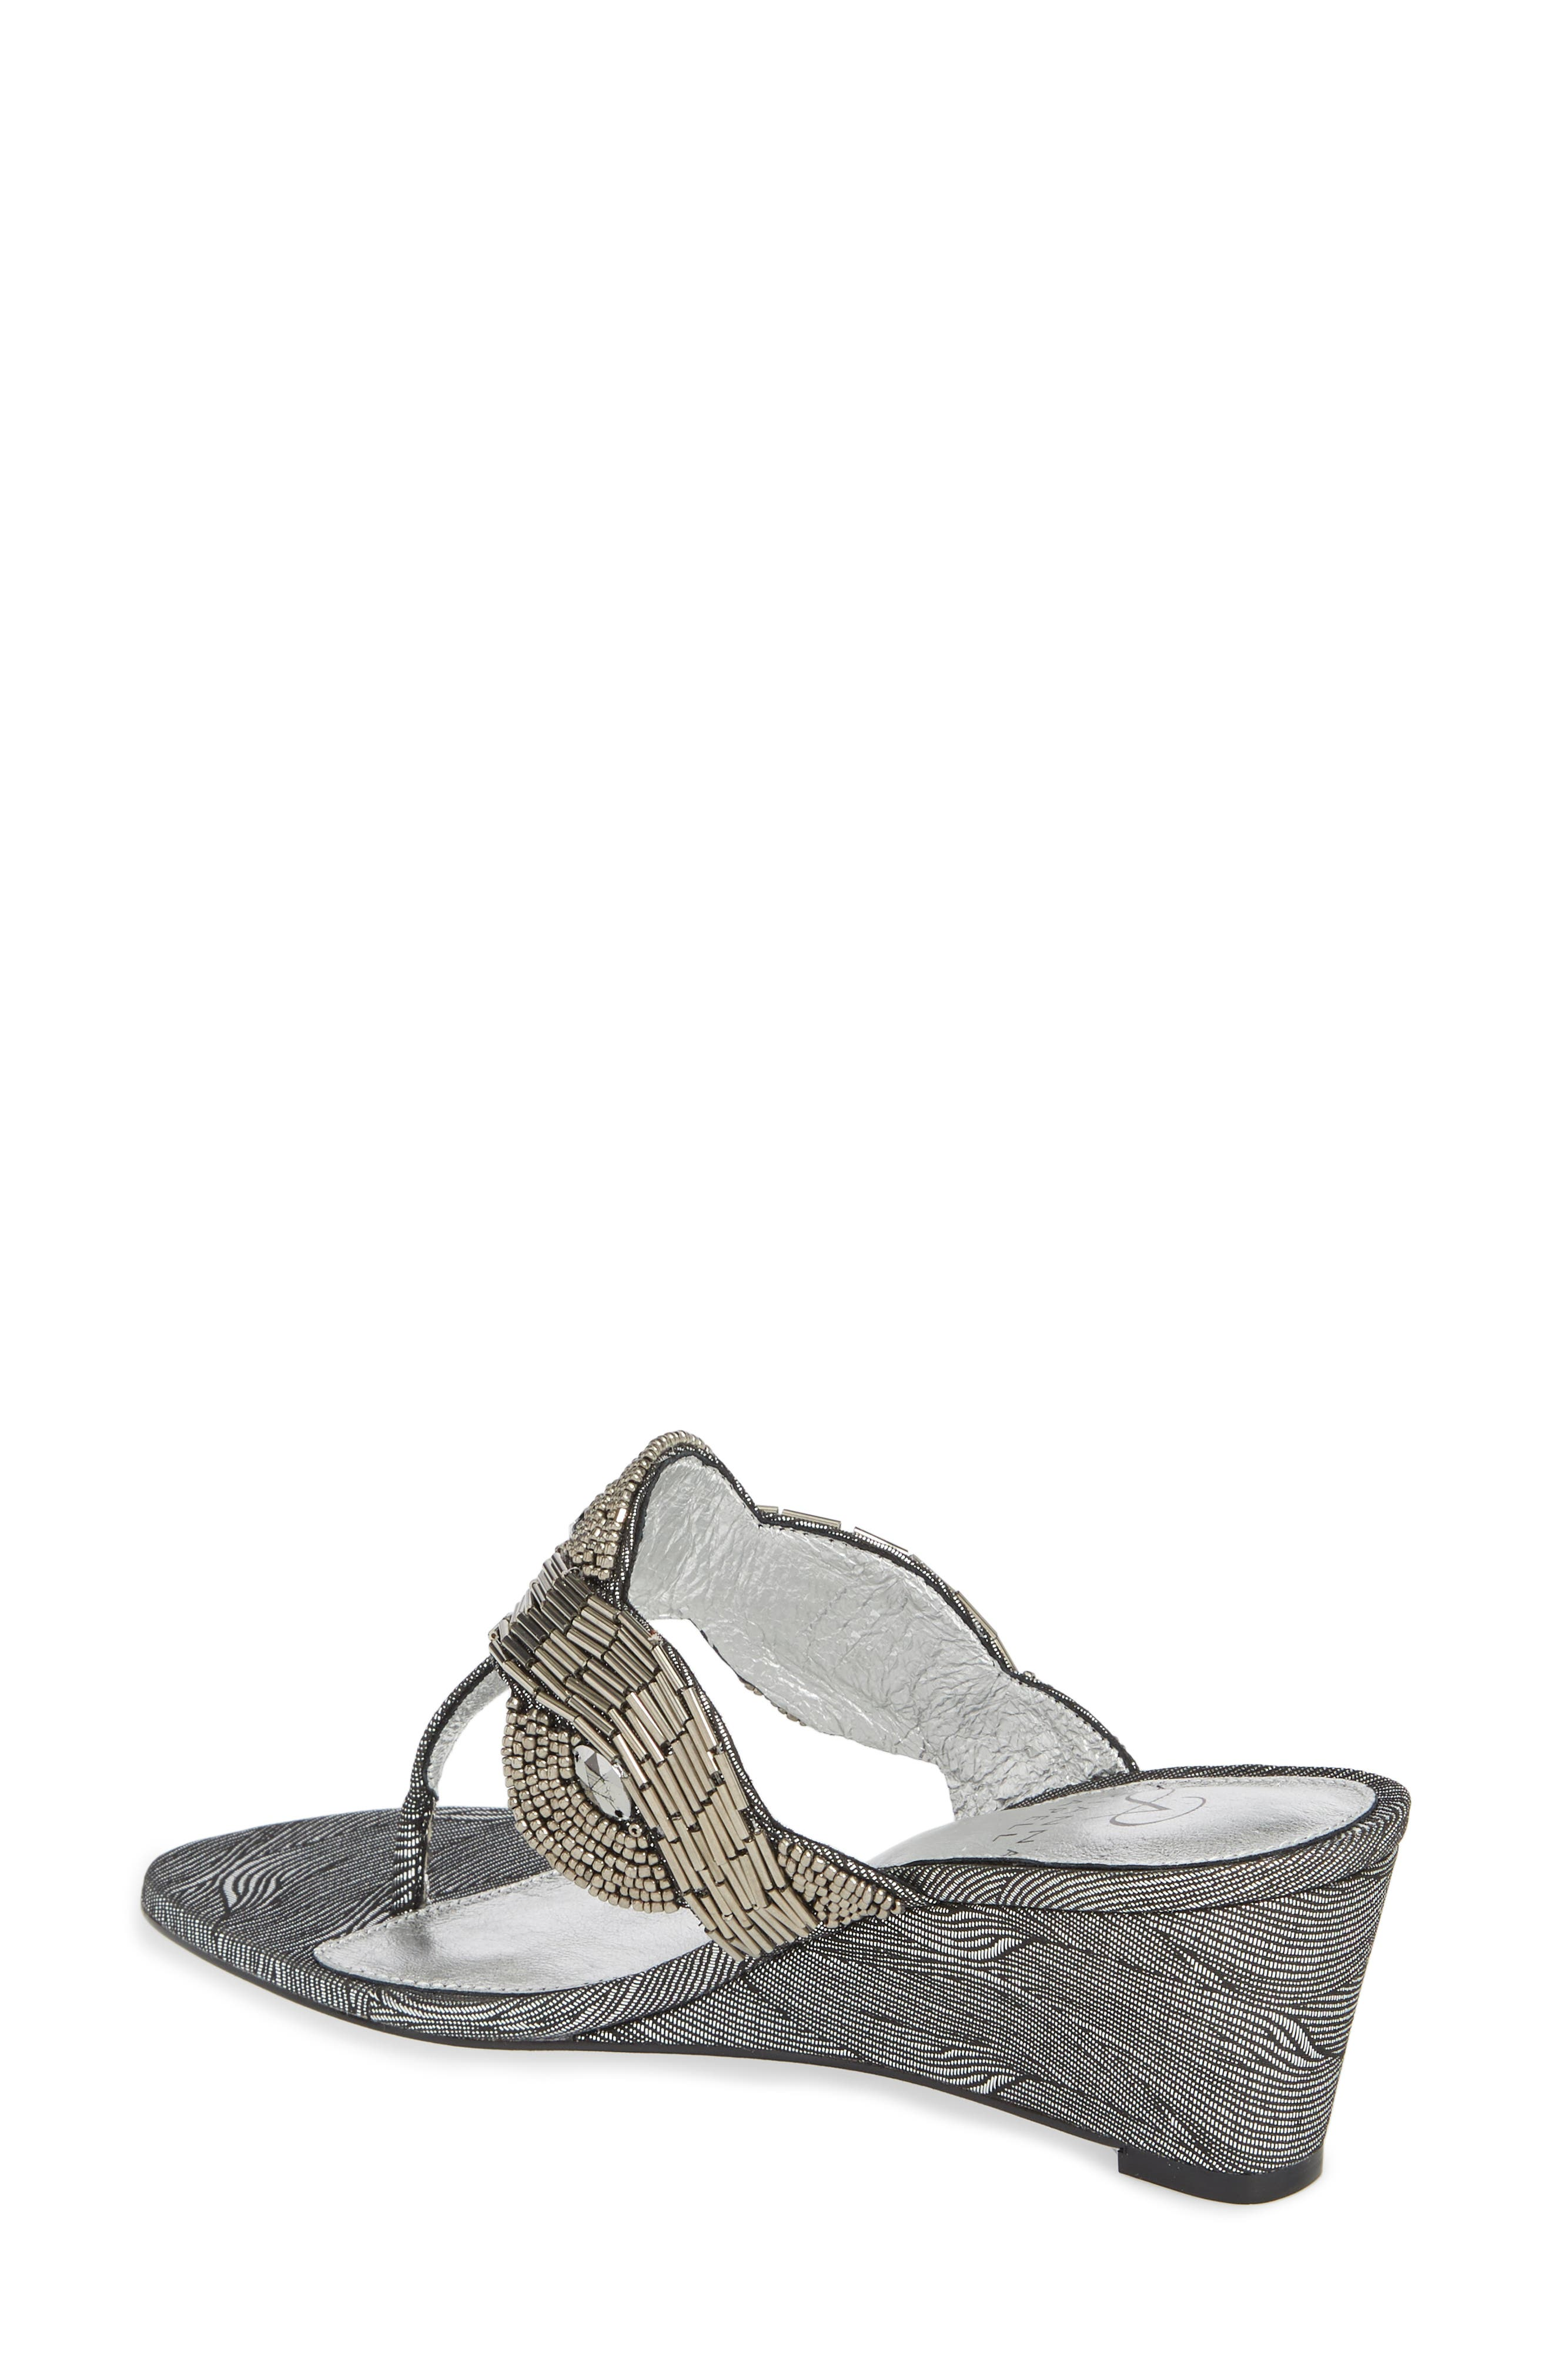 ADRIANNA PAPELL,                             Coco Beaded Wedge Sandal,                             Alternate thumbnail 2, color,                             049